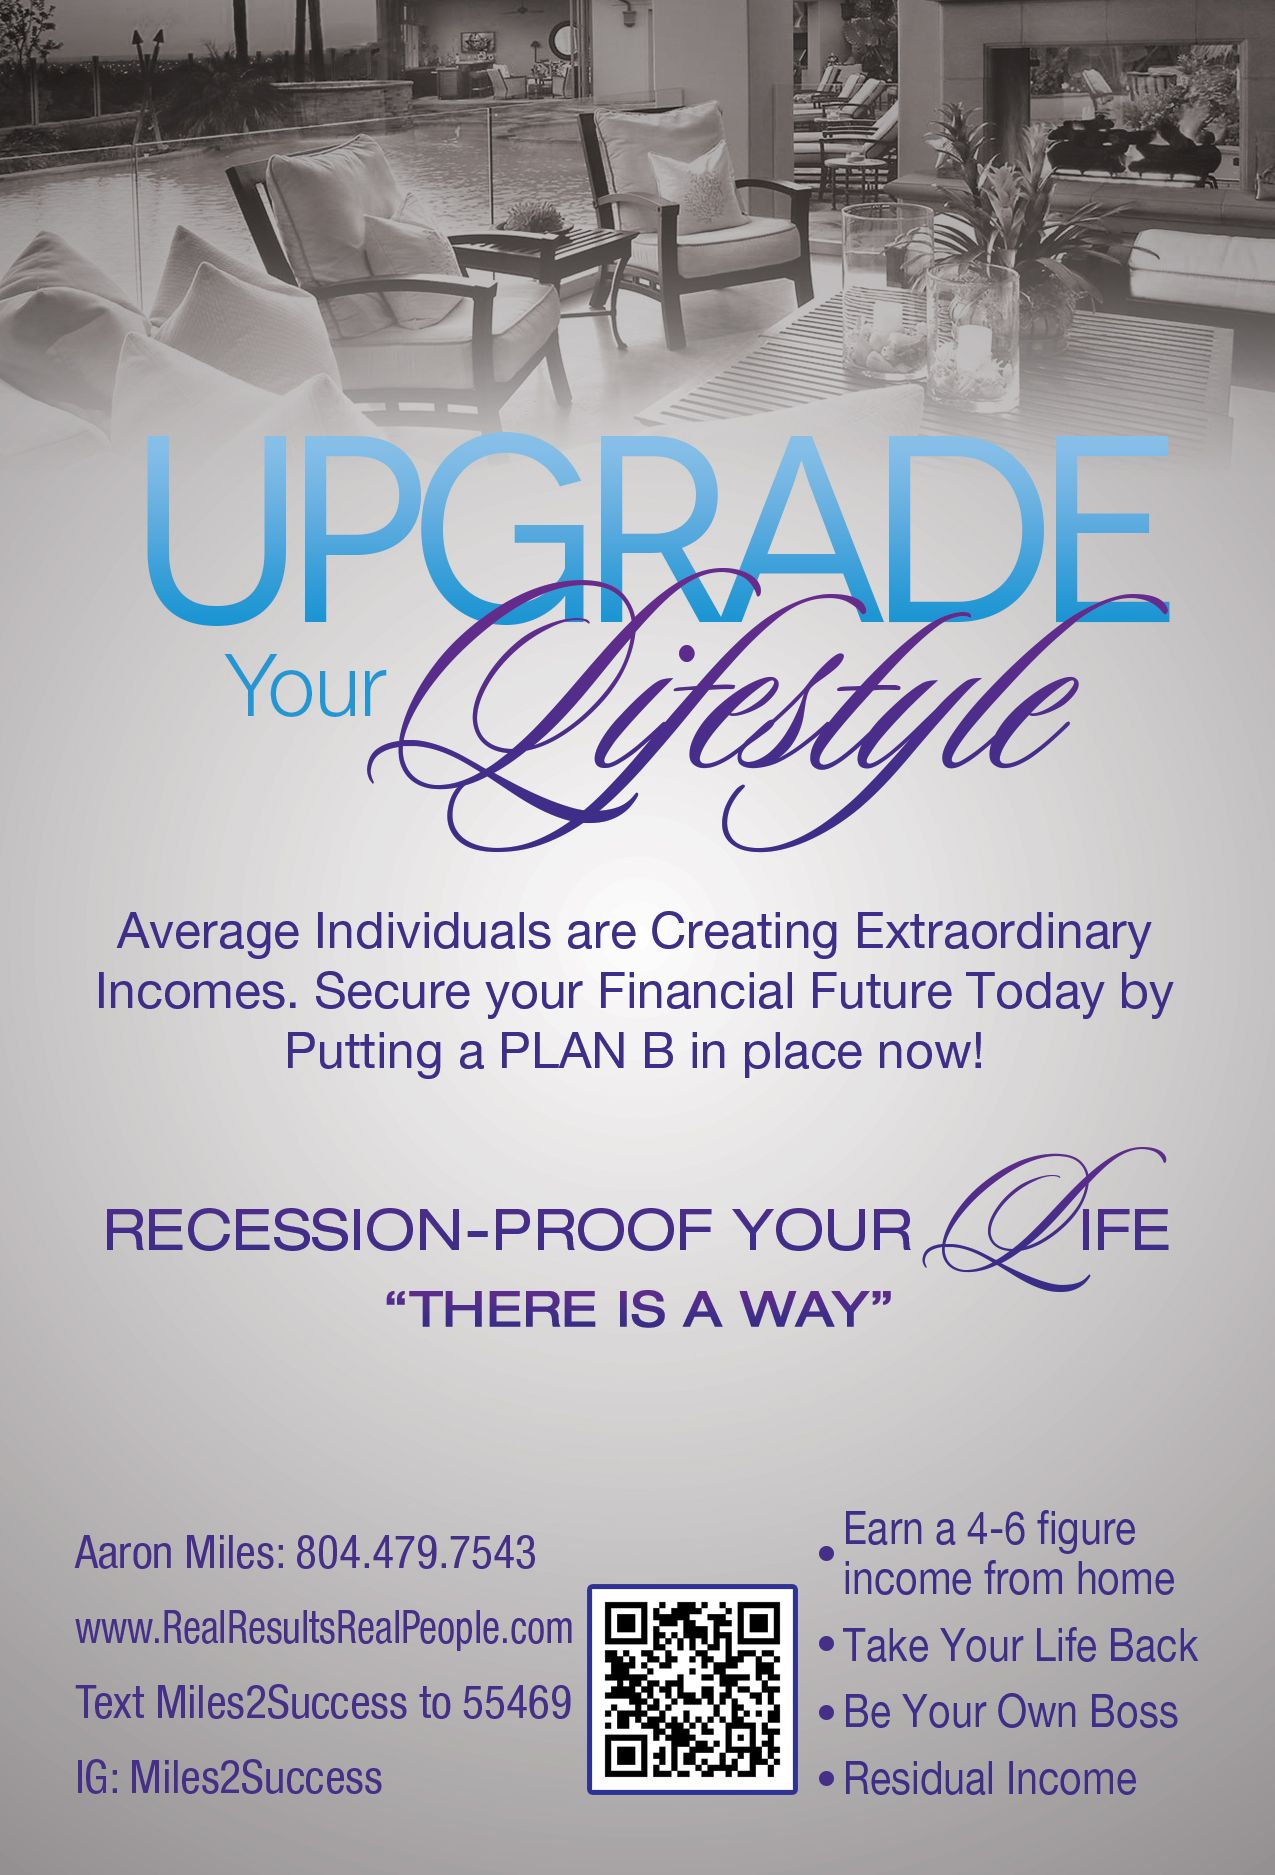 flyer design for an mlm company based out of new york